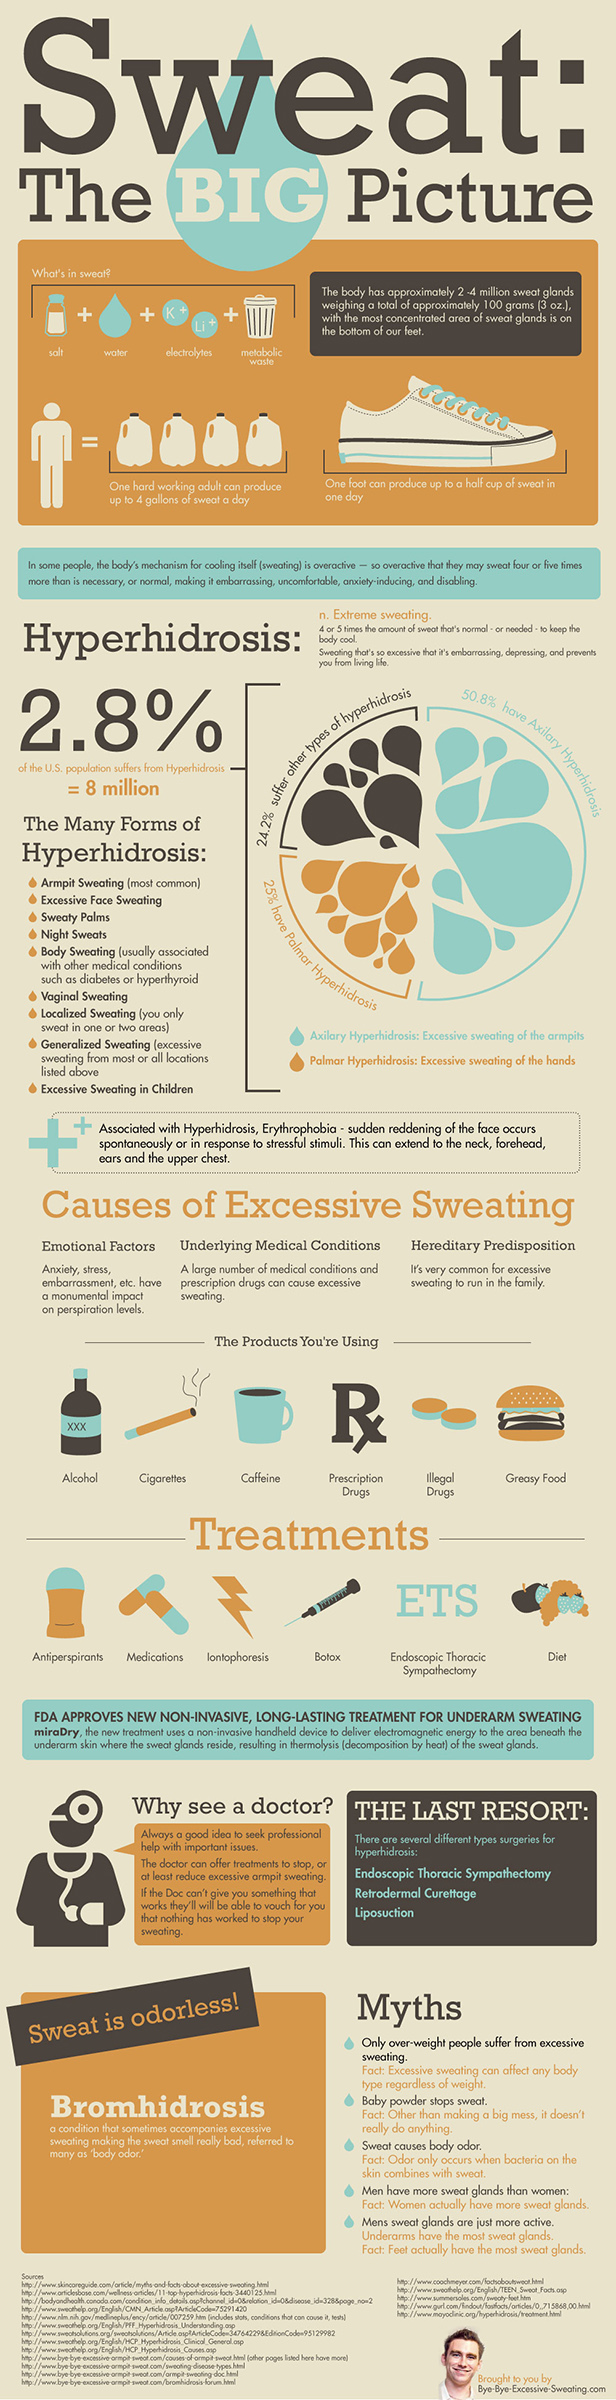 Does Your Sweat Smell Like Vinegar?(Causes,Symptoms,Treatment)